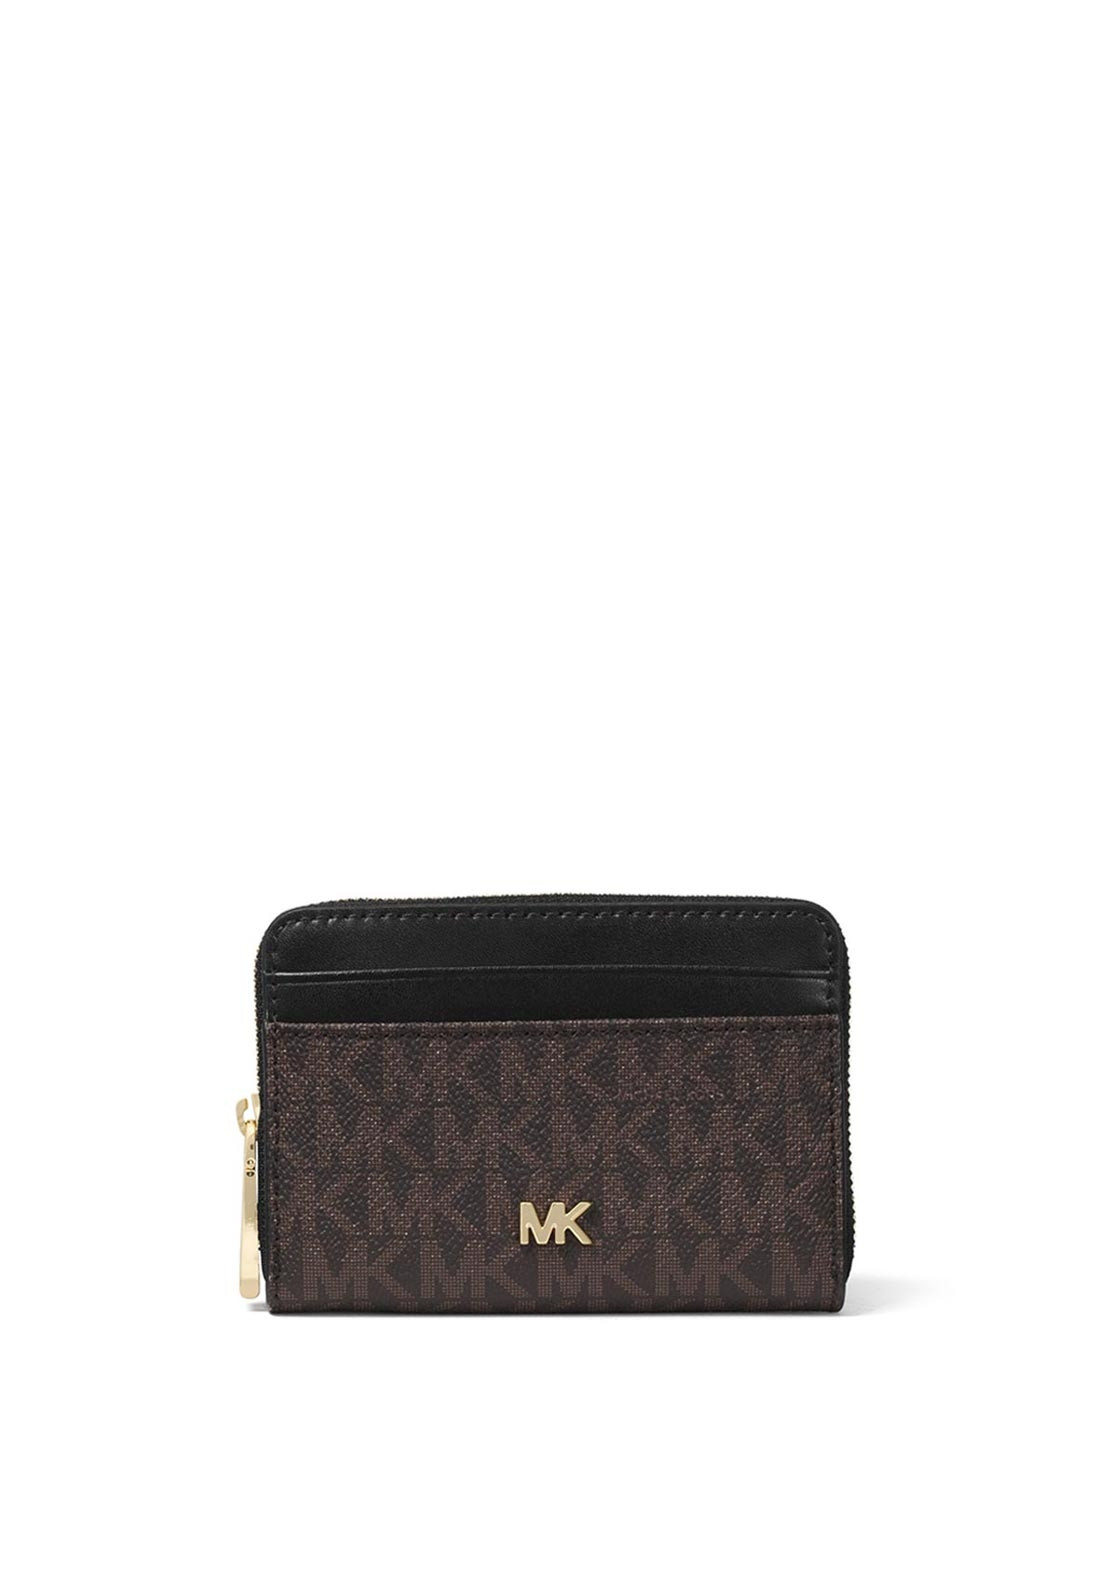 d84e92a5cae MICHAEL Michael Kors Money Pieces Mini Wallet, Brown. Be the first to  review this product